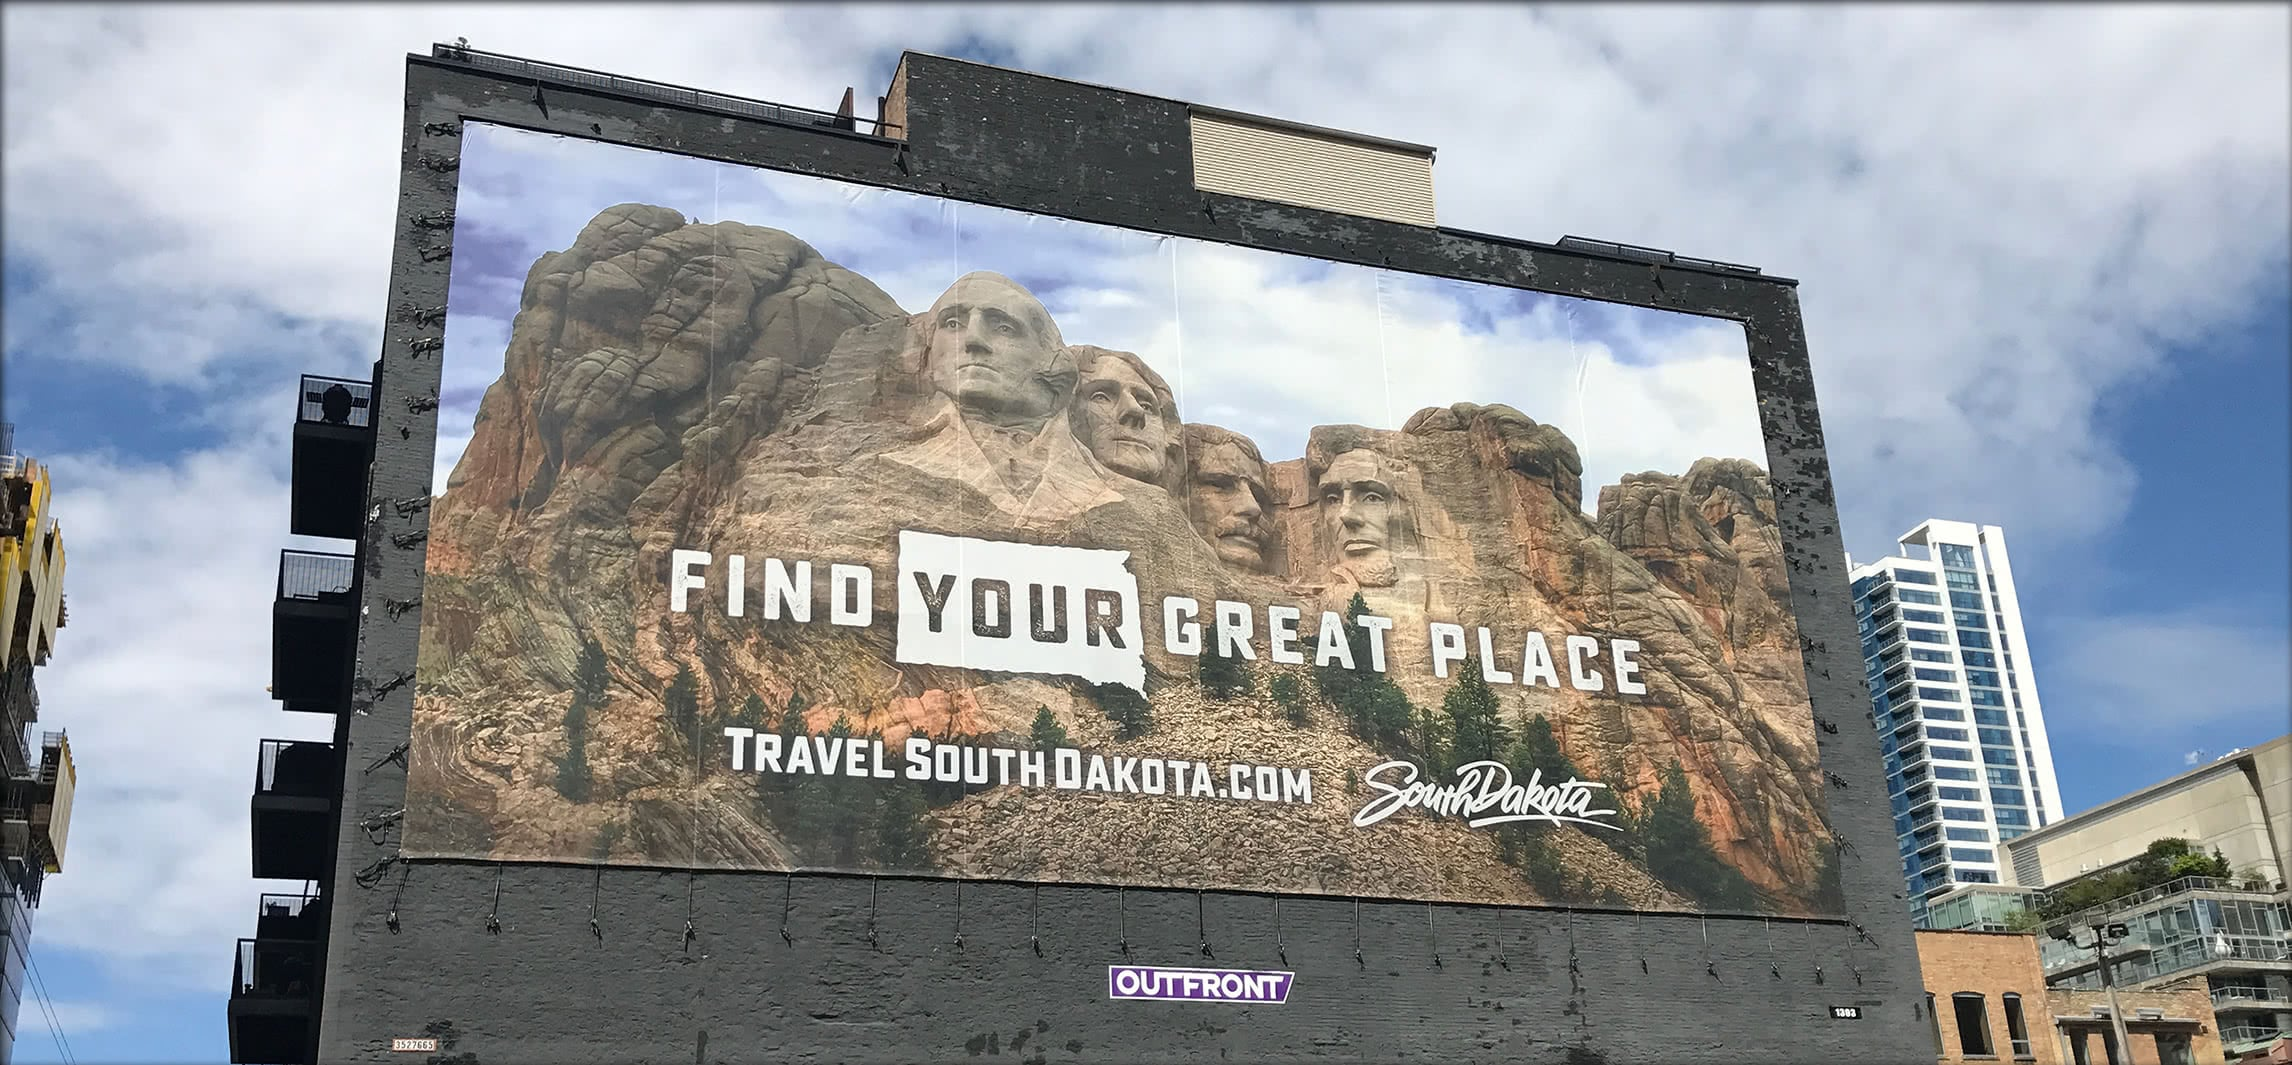 Travel South Dakota Building Sign